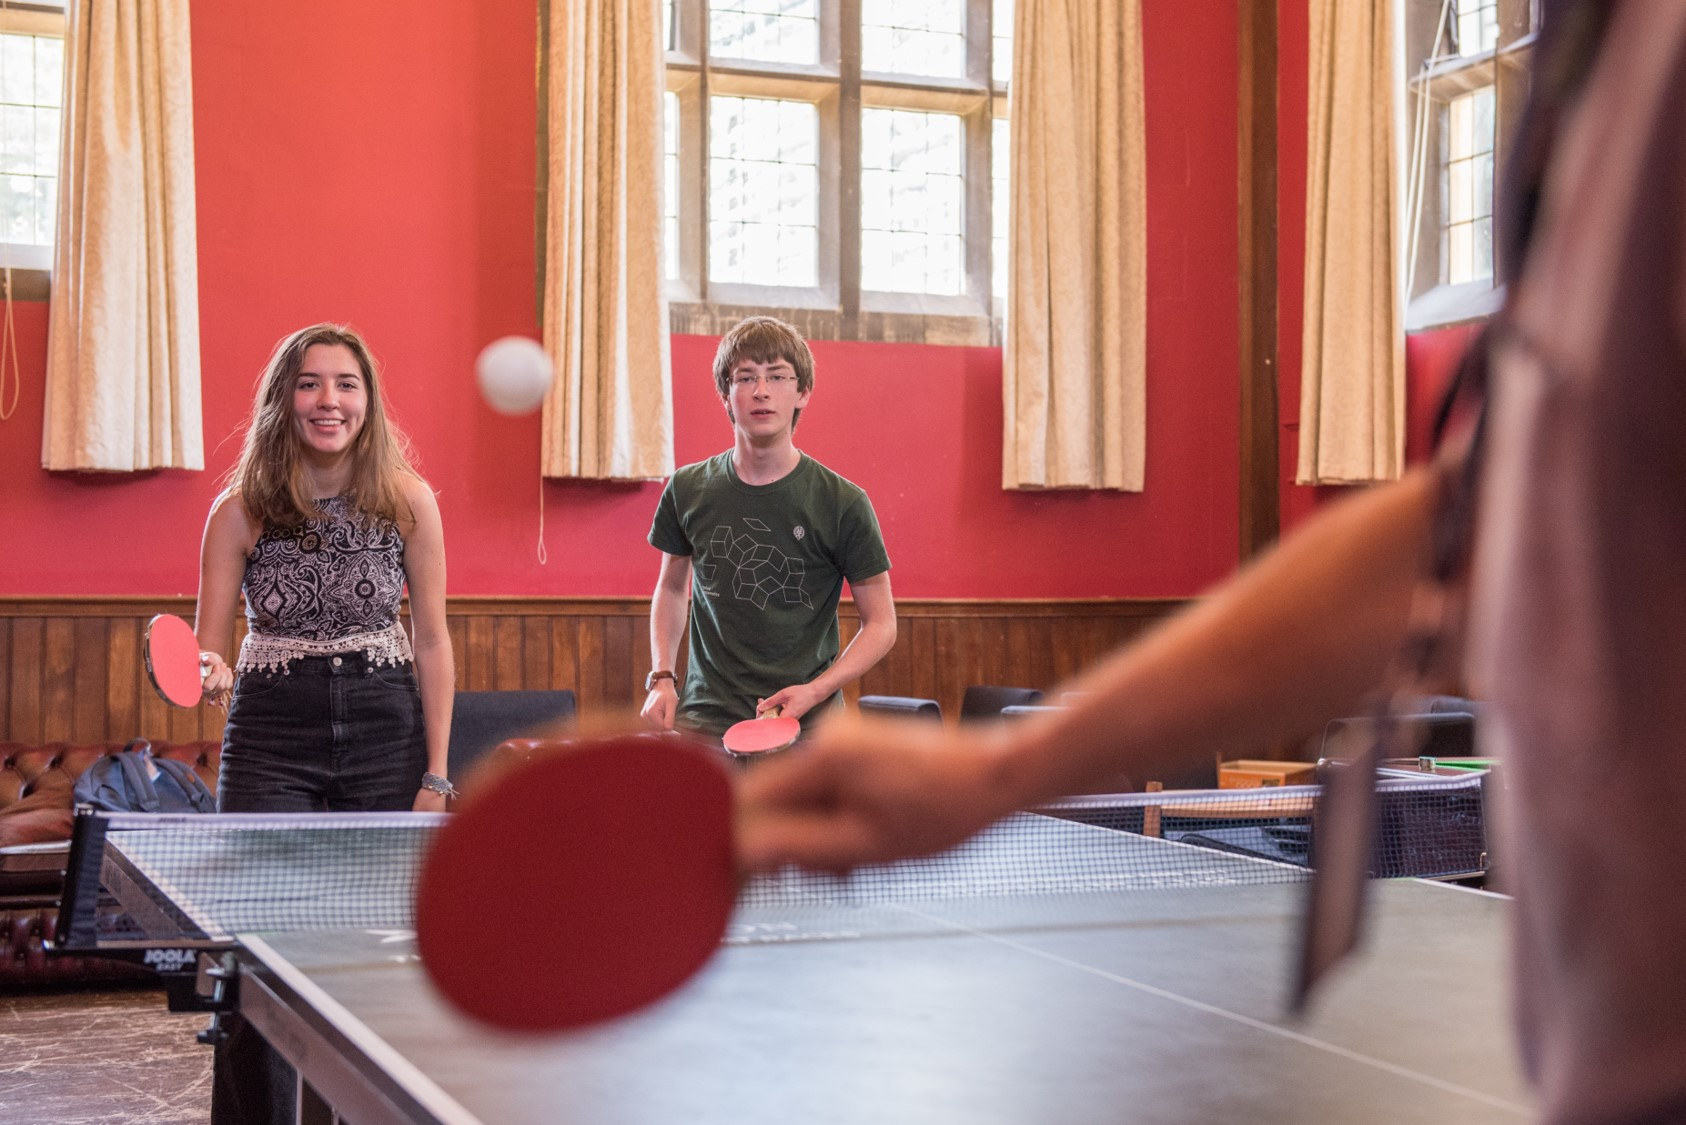 Three students playing table tennis in a large room with red walls